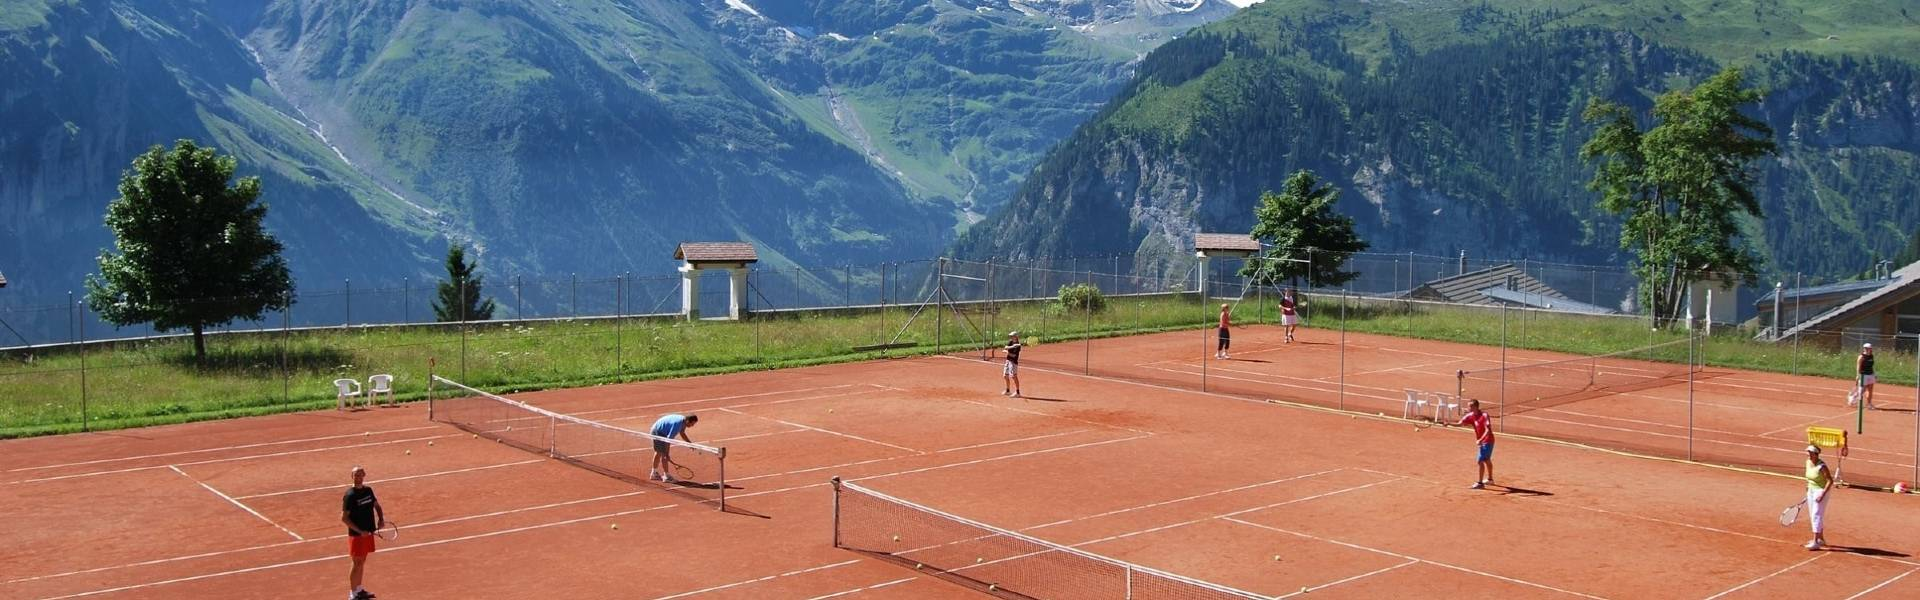 Stanglwirt Hotel outdoor clay tennis courts